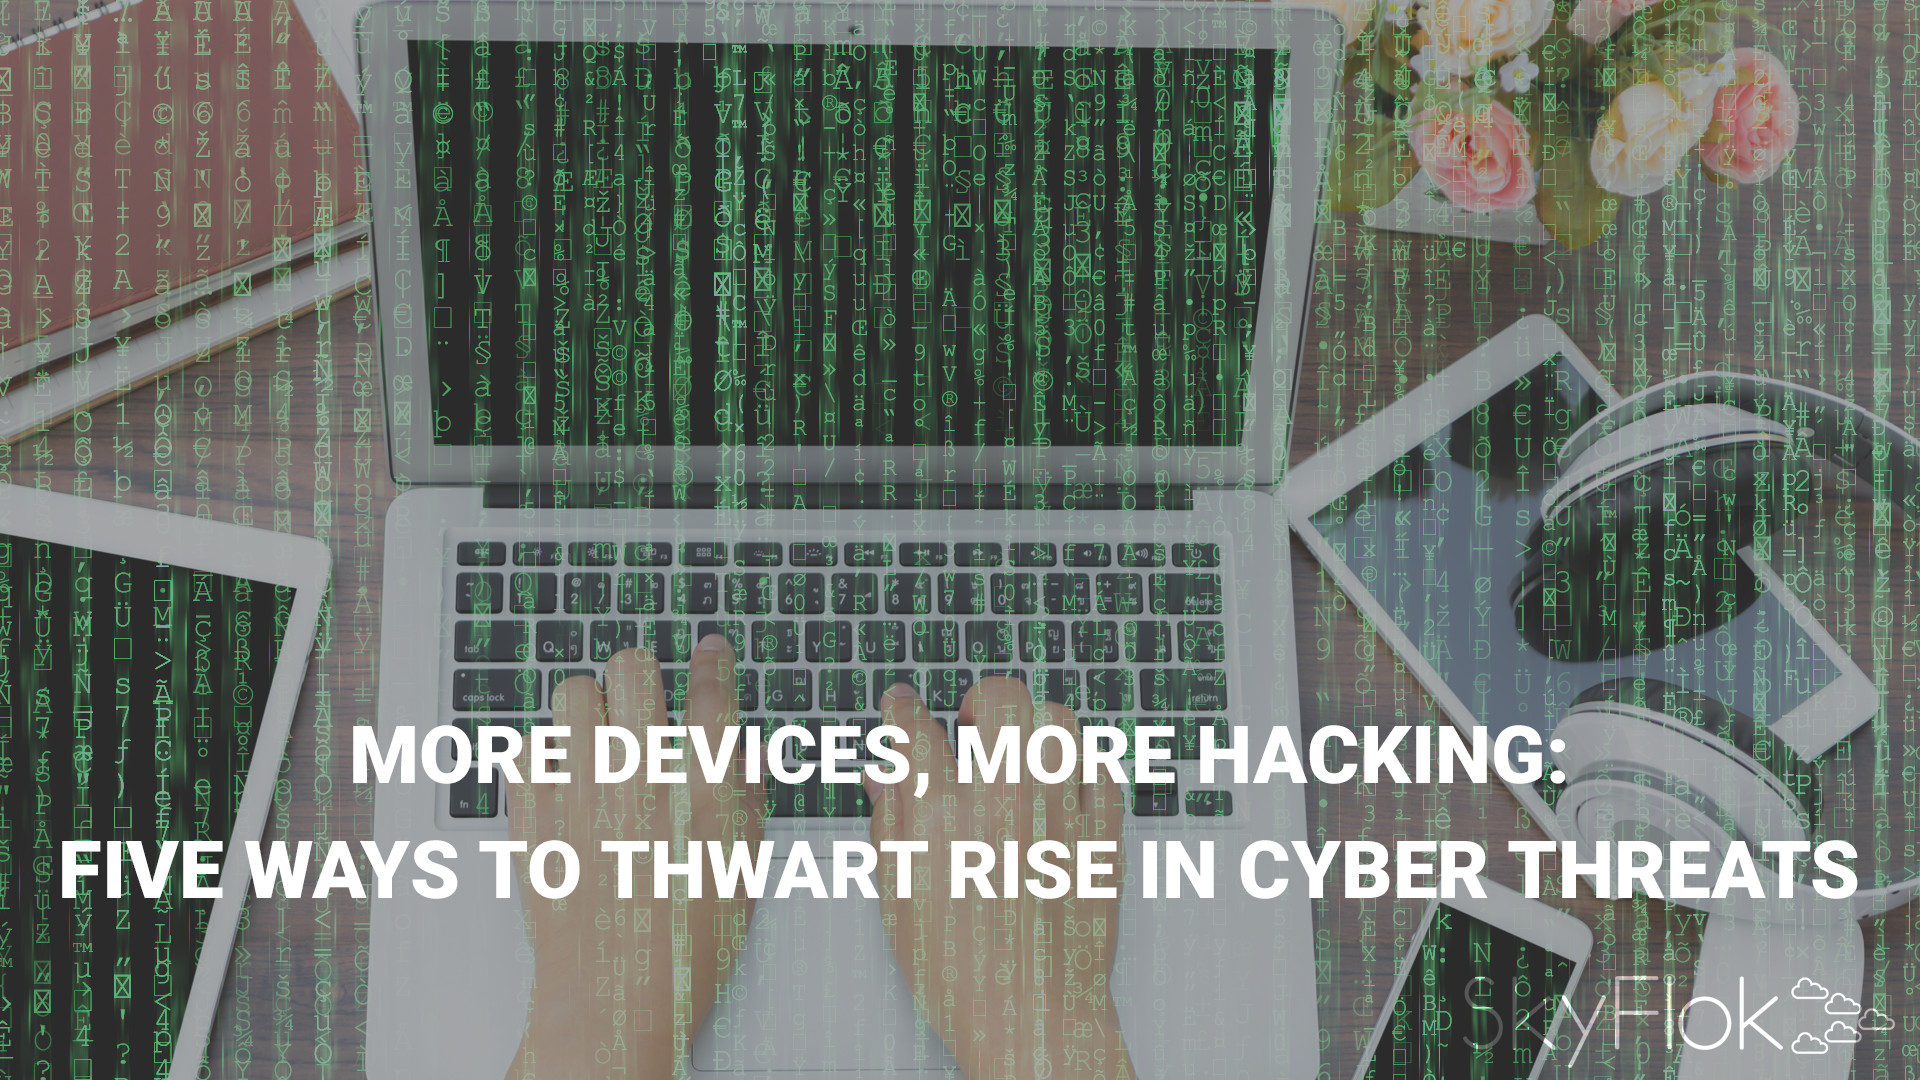 More Devices, More Hacking: Five Ways to Thwart Rise in Cyber Threats